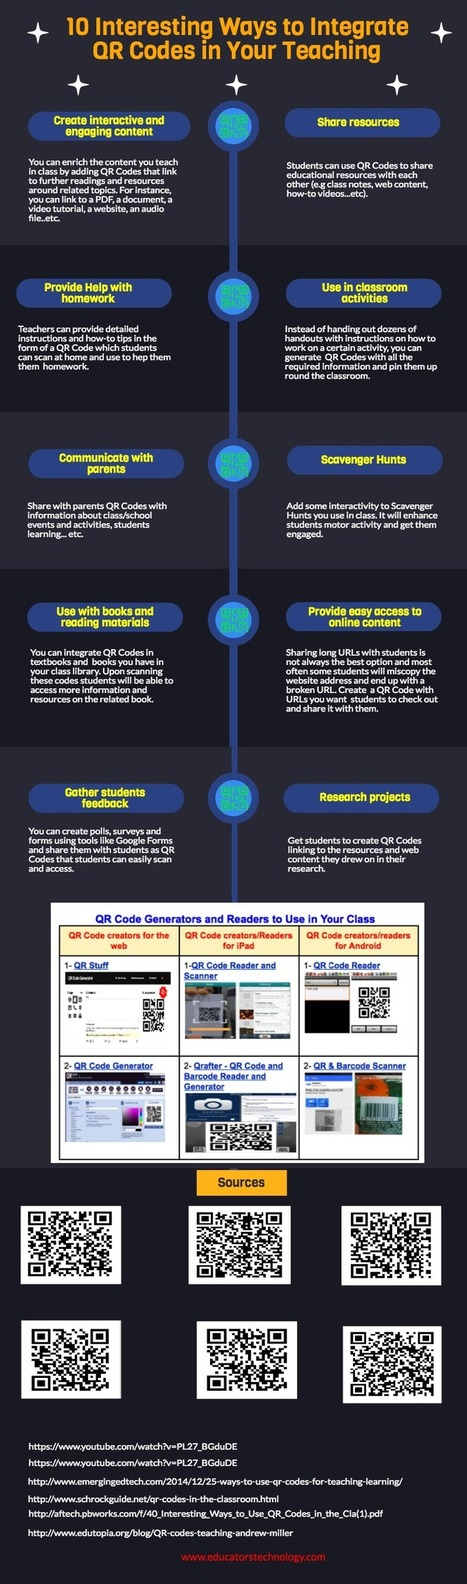 10 Interesting Ways to Integrate QR Codes in Your Teaching (Infographic) ~ Educational Technology and Mobile Learning | Into the Driver's Seat | Scoop.it